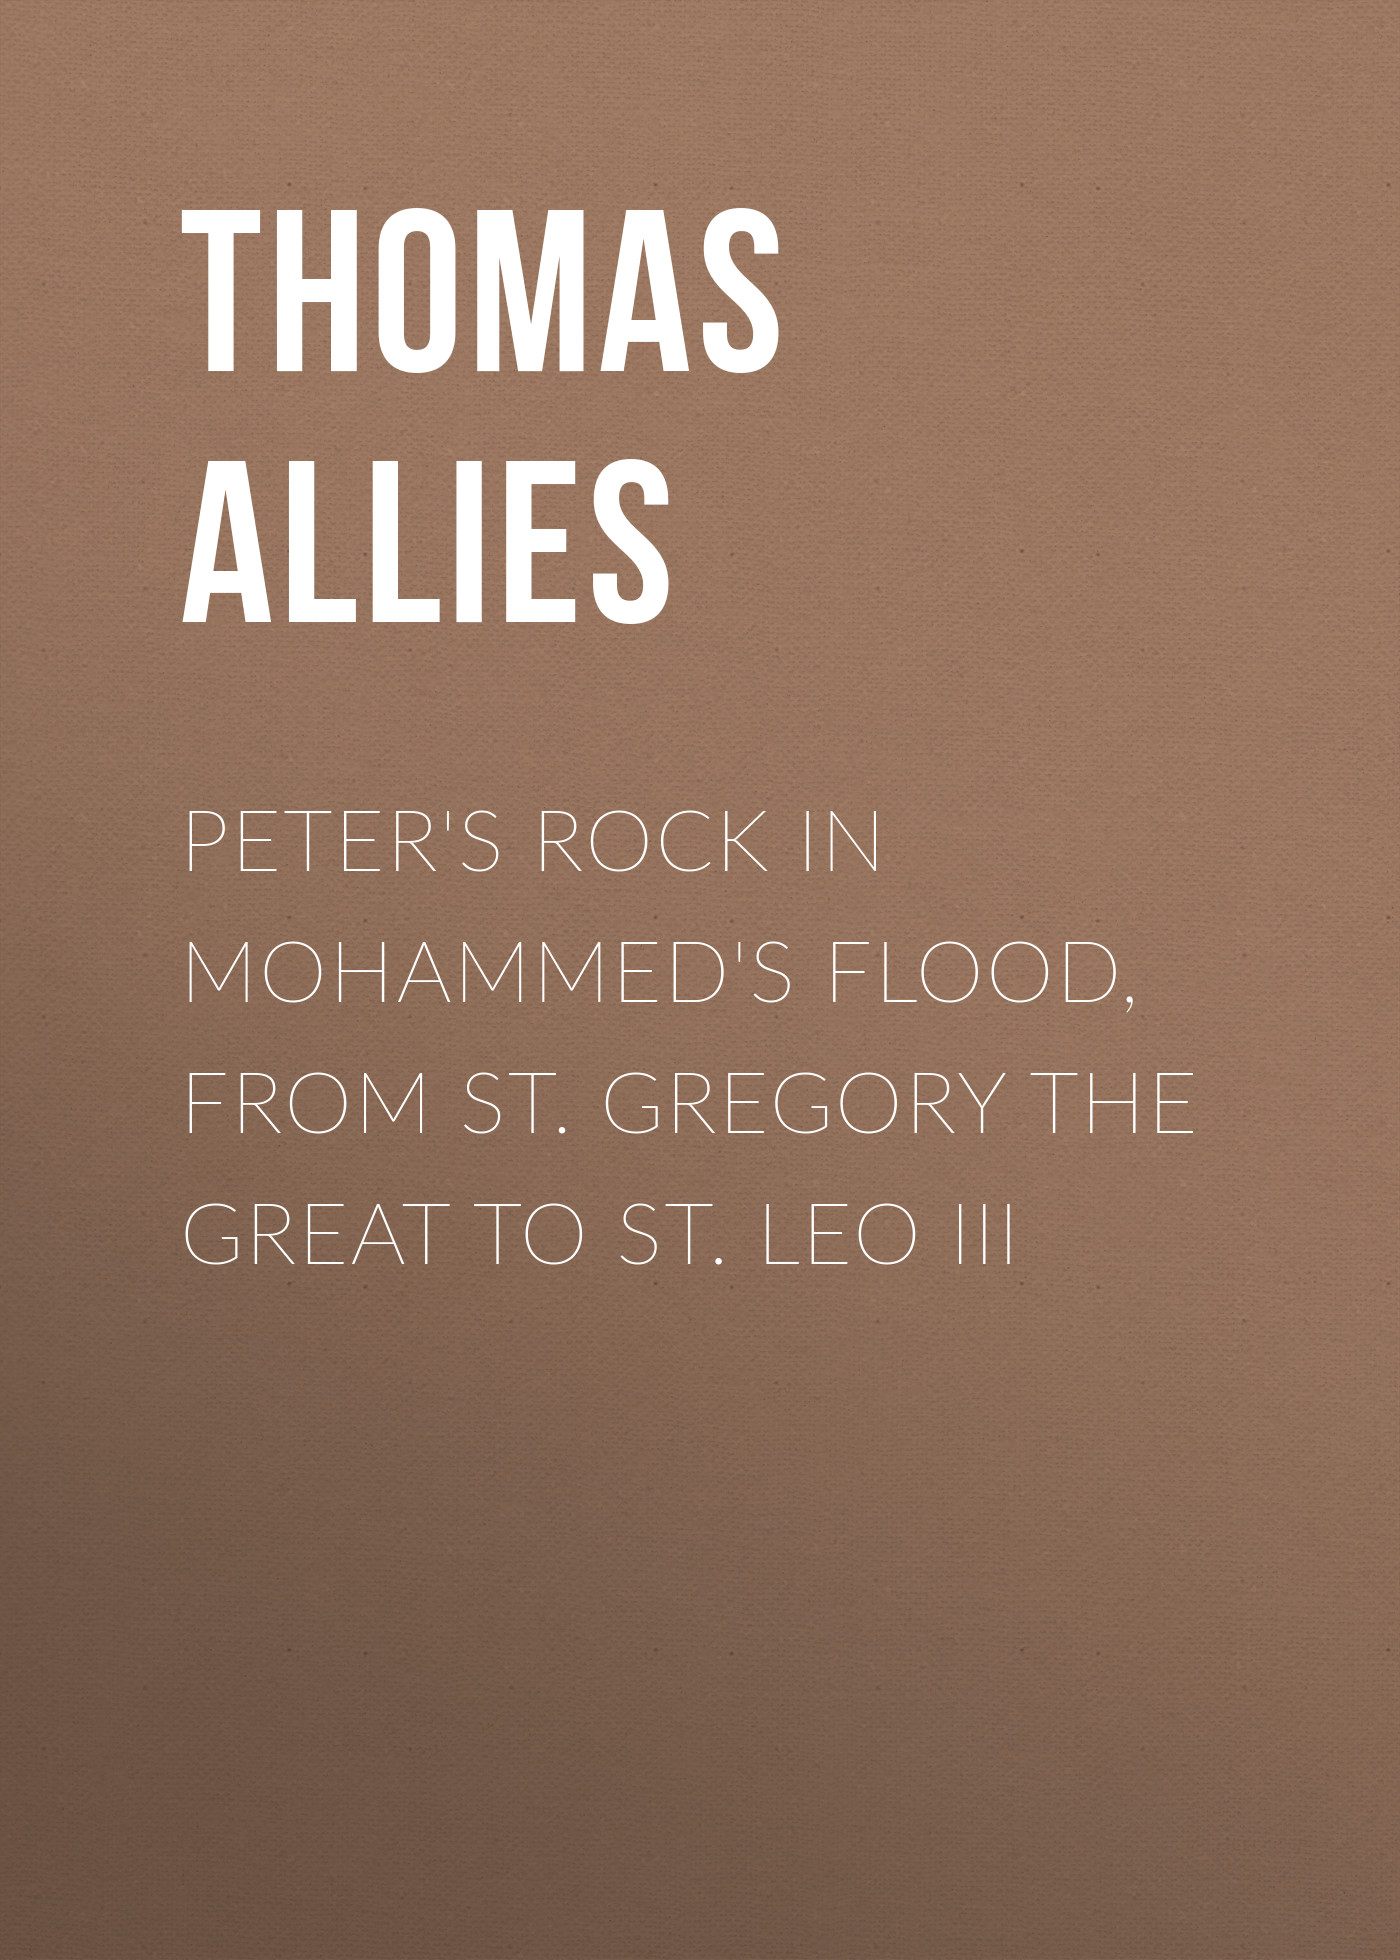 Allies Thomas William Peter's Rock in Mohammed's Flood, from St. Gregory the Great to St. Leo III bta08 600b st to 220 8a600v